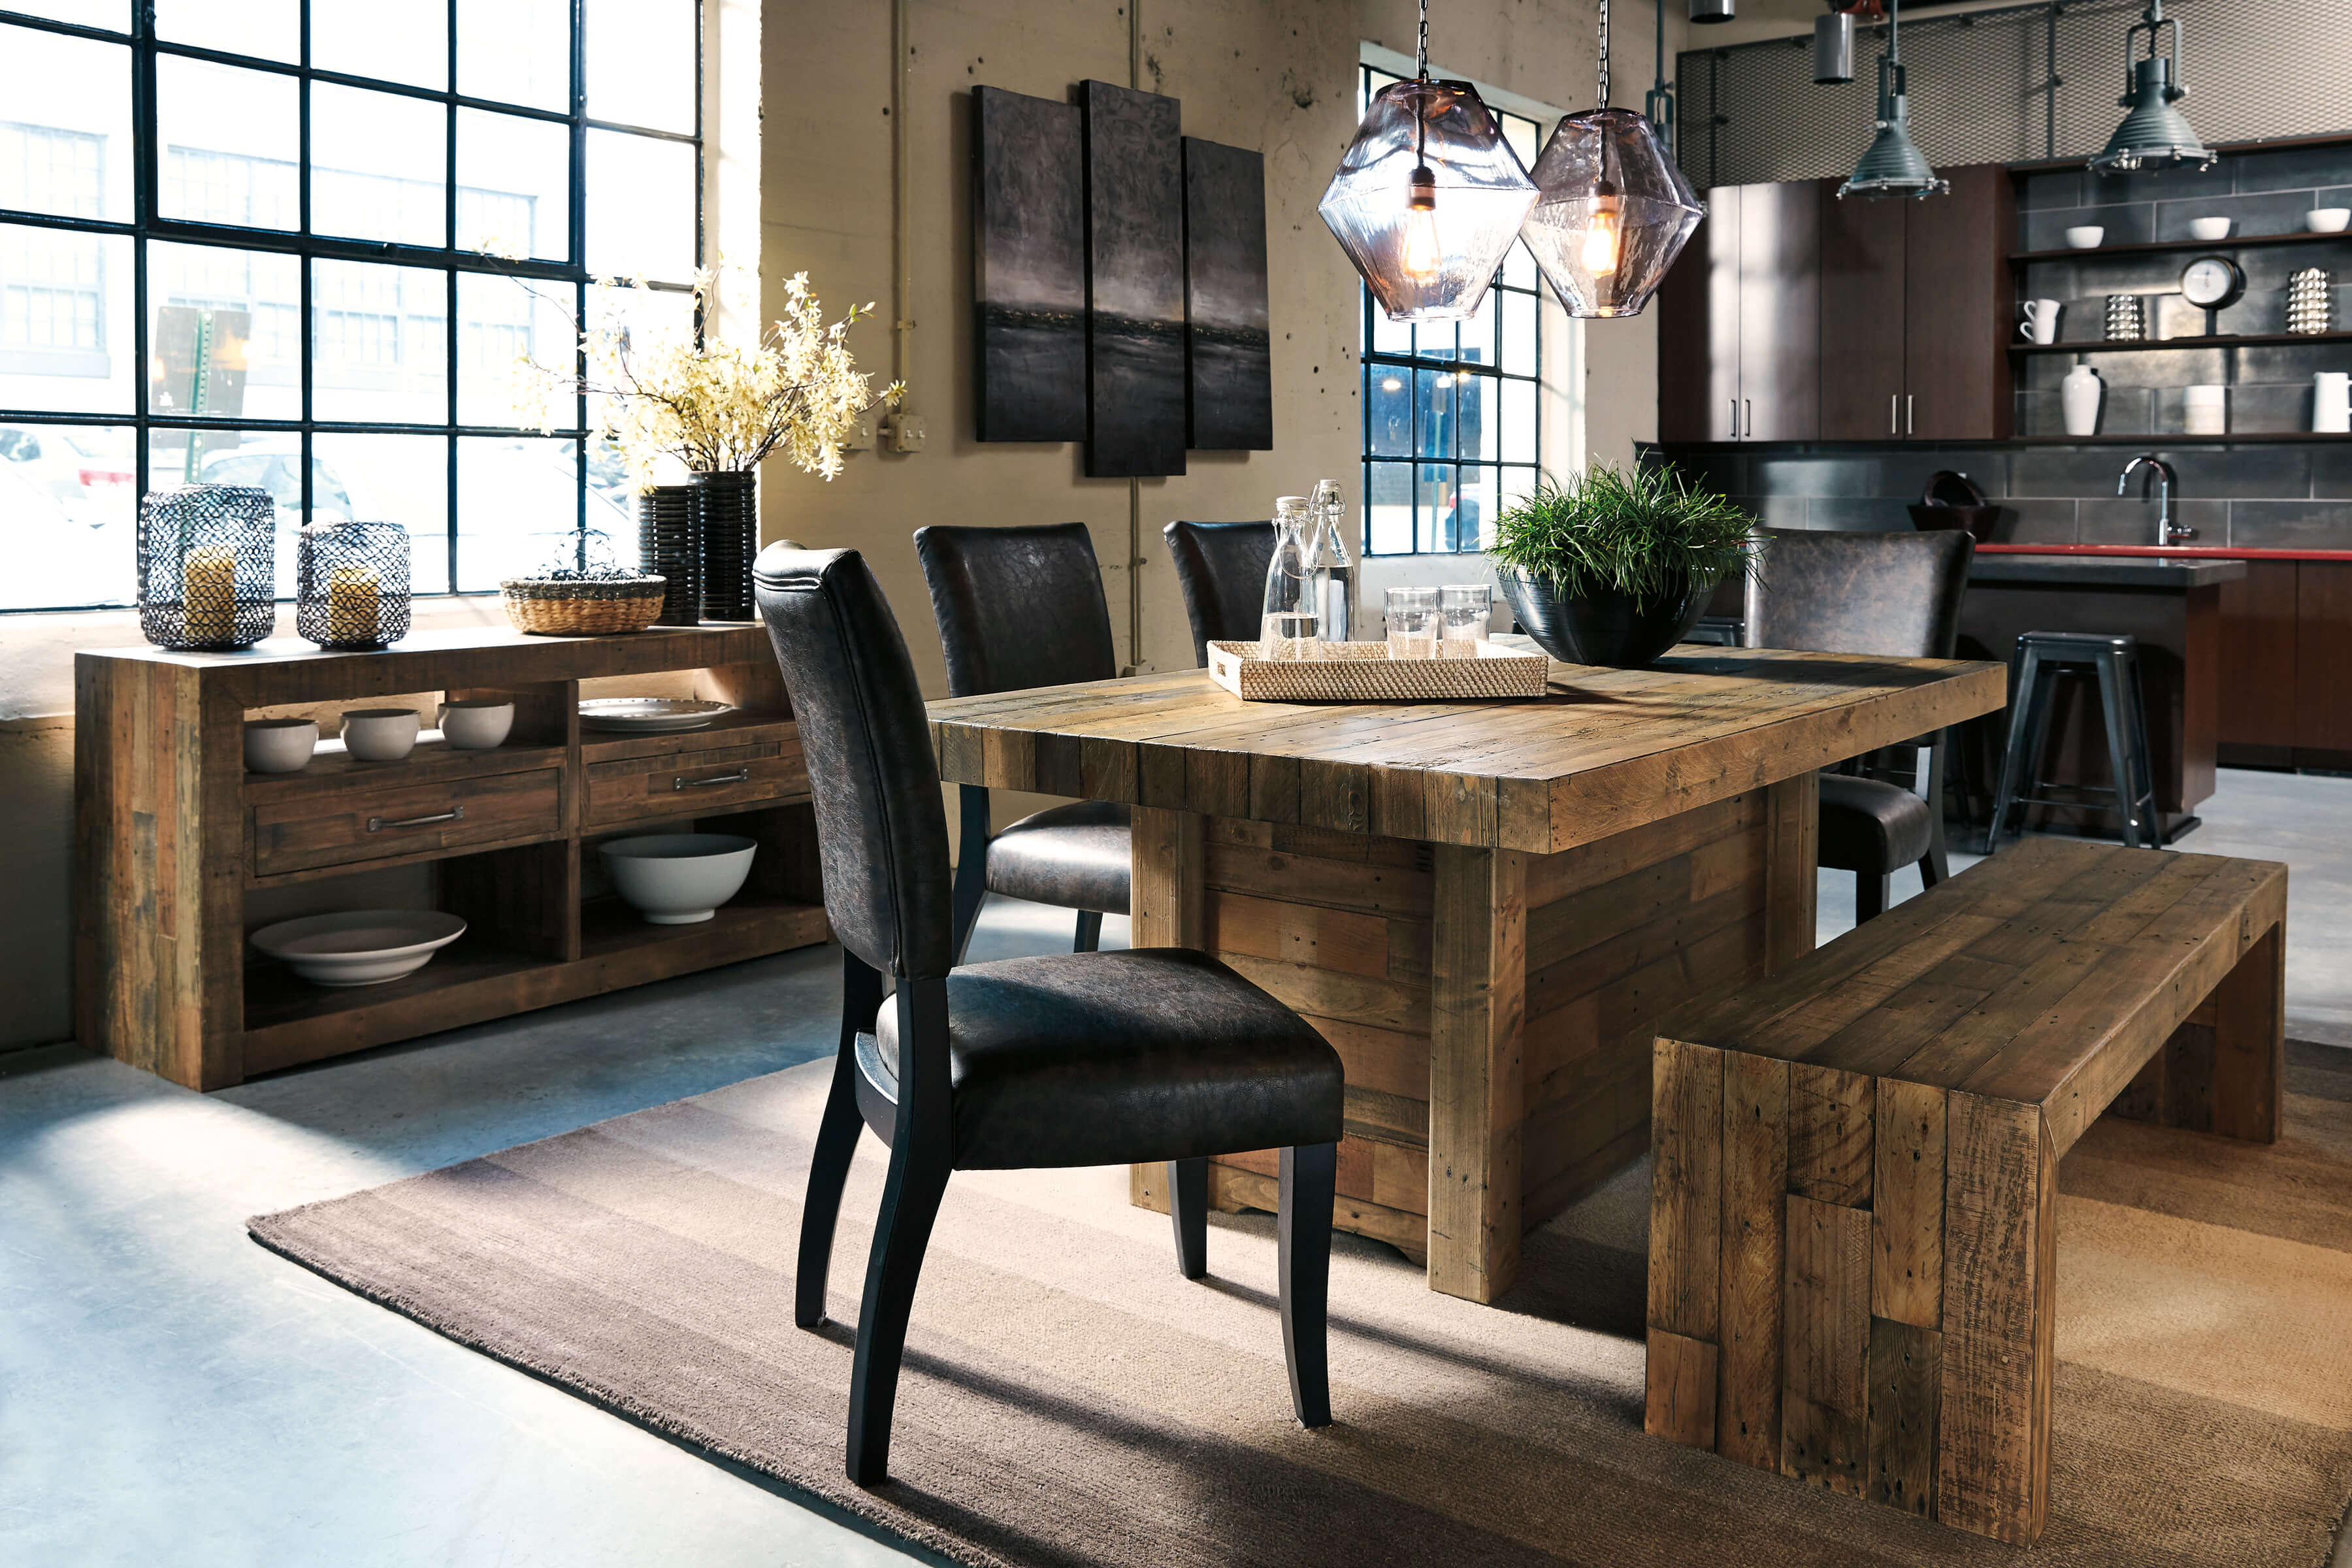 What Type of Wood is Best for Furniture? – A Fella Design Guide